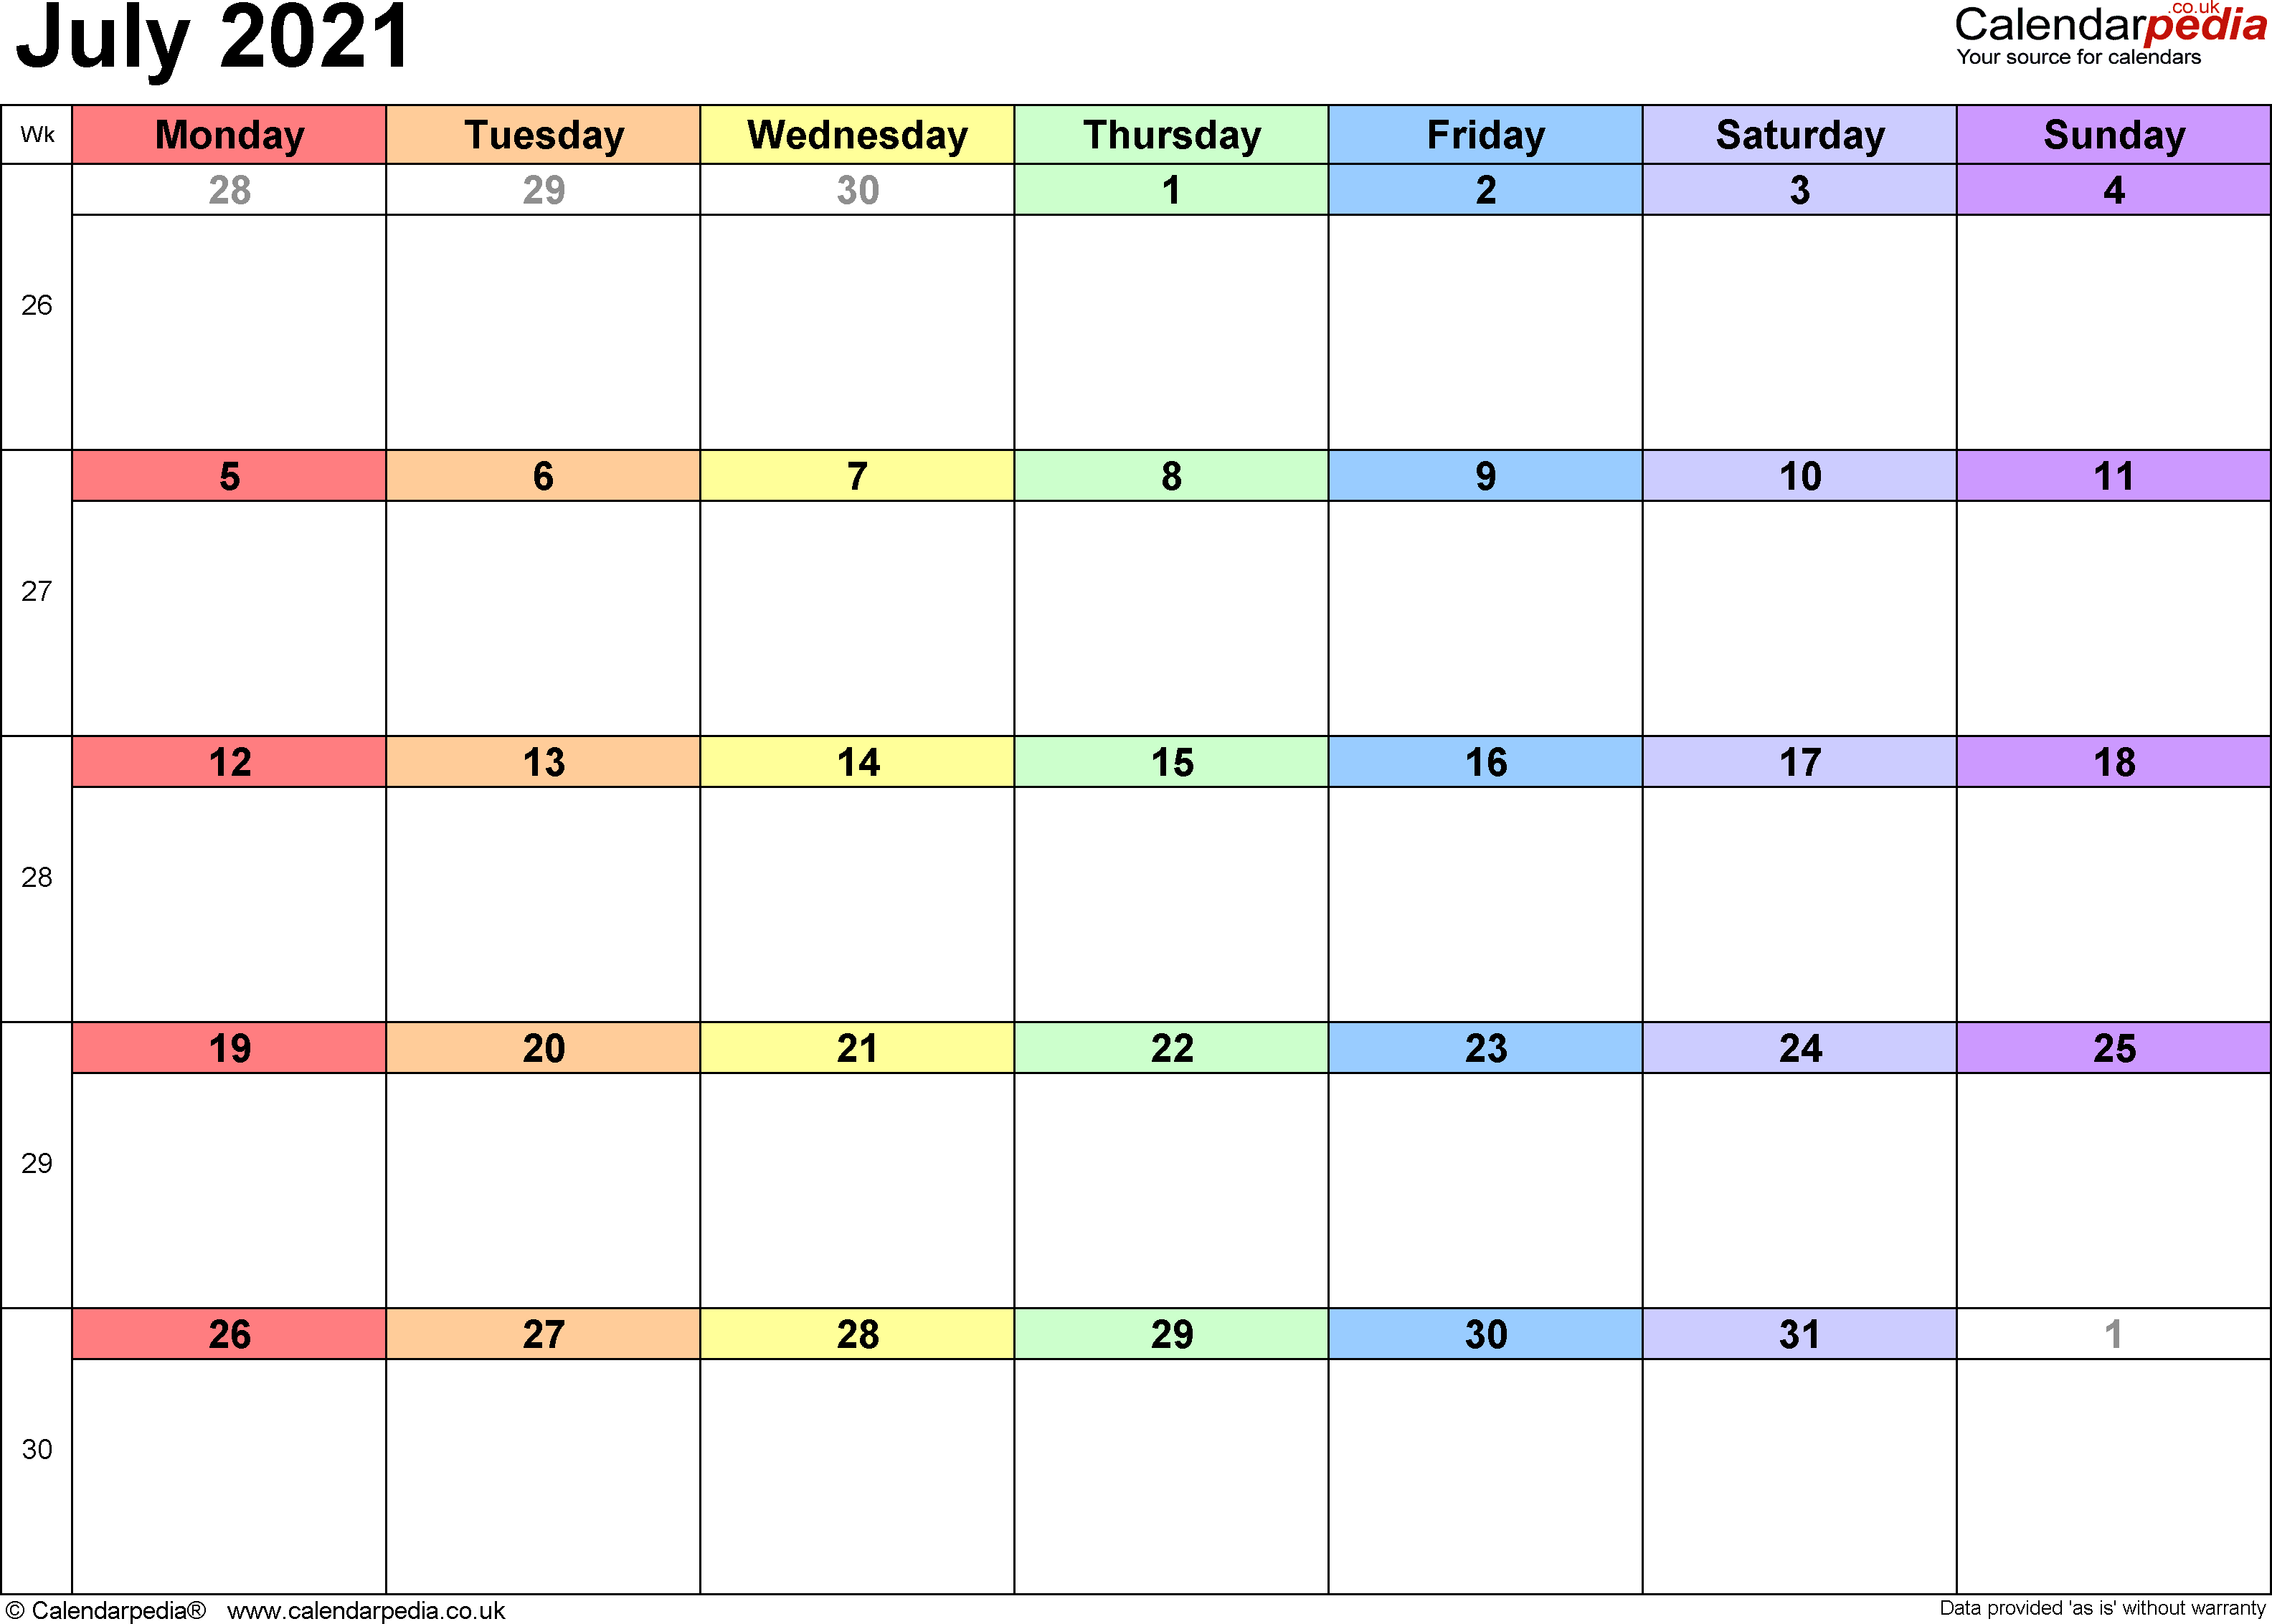 Calendar July 2021 UK, Bank Holidays, Excel/PDF/Word Templates